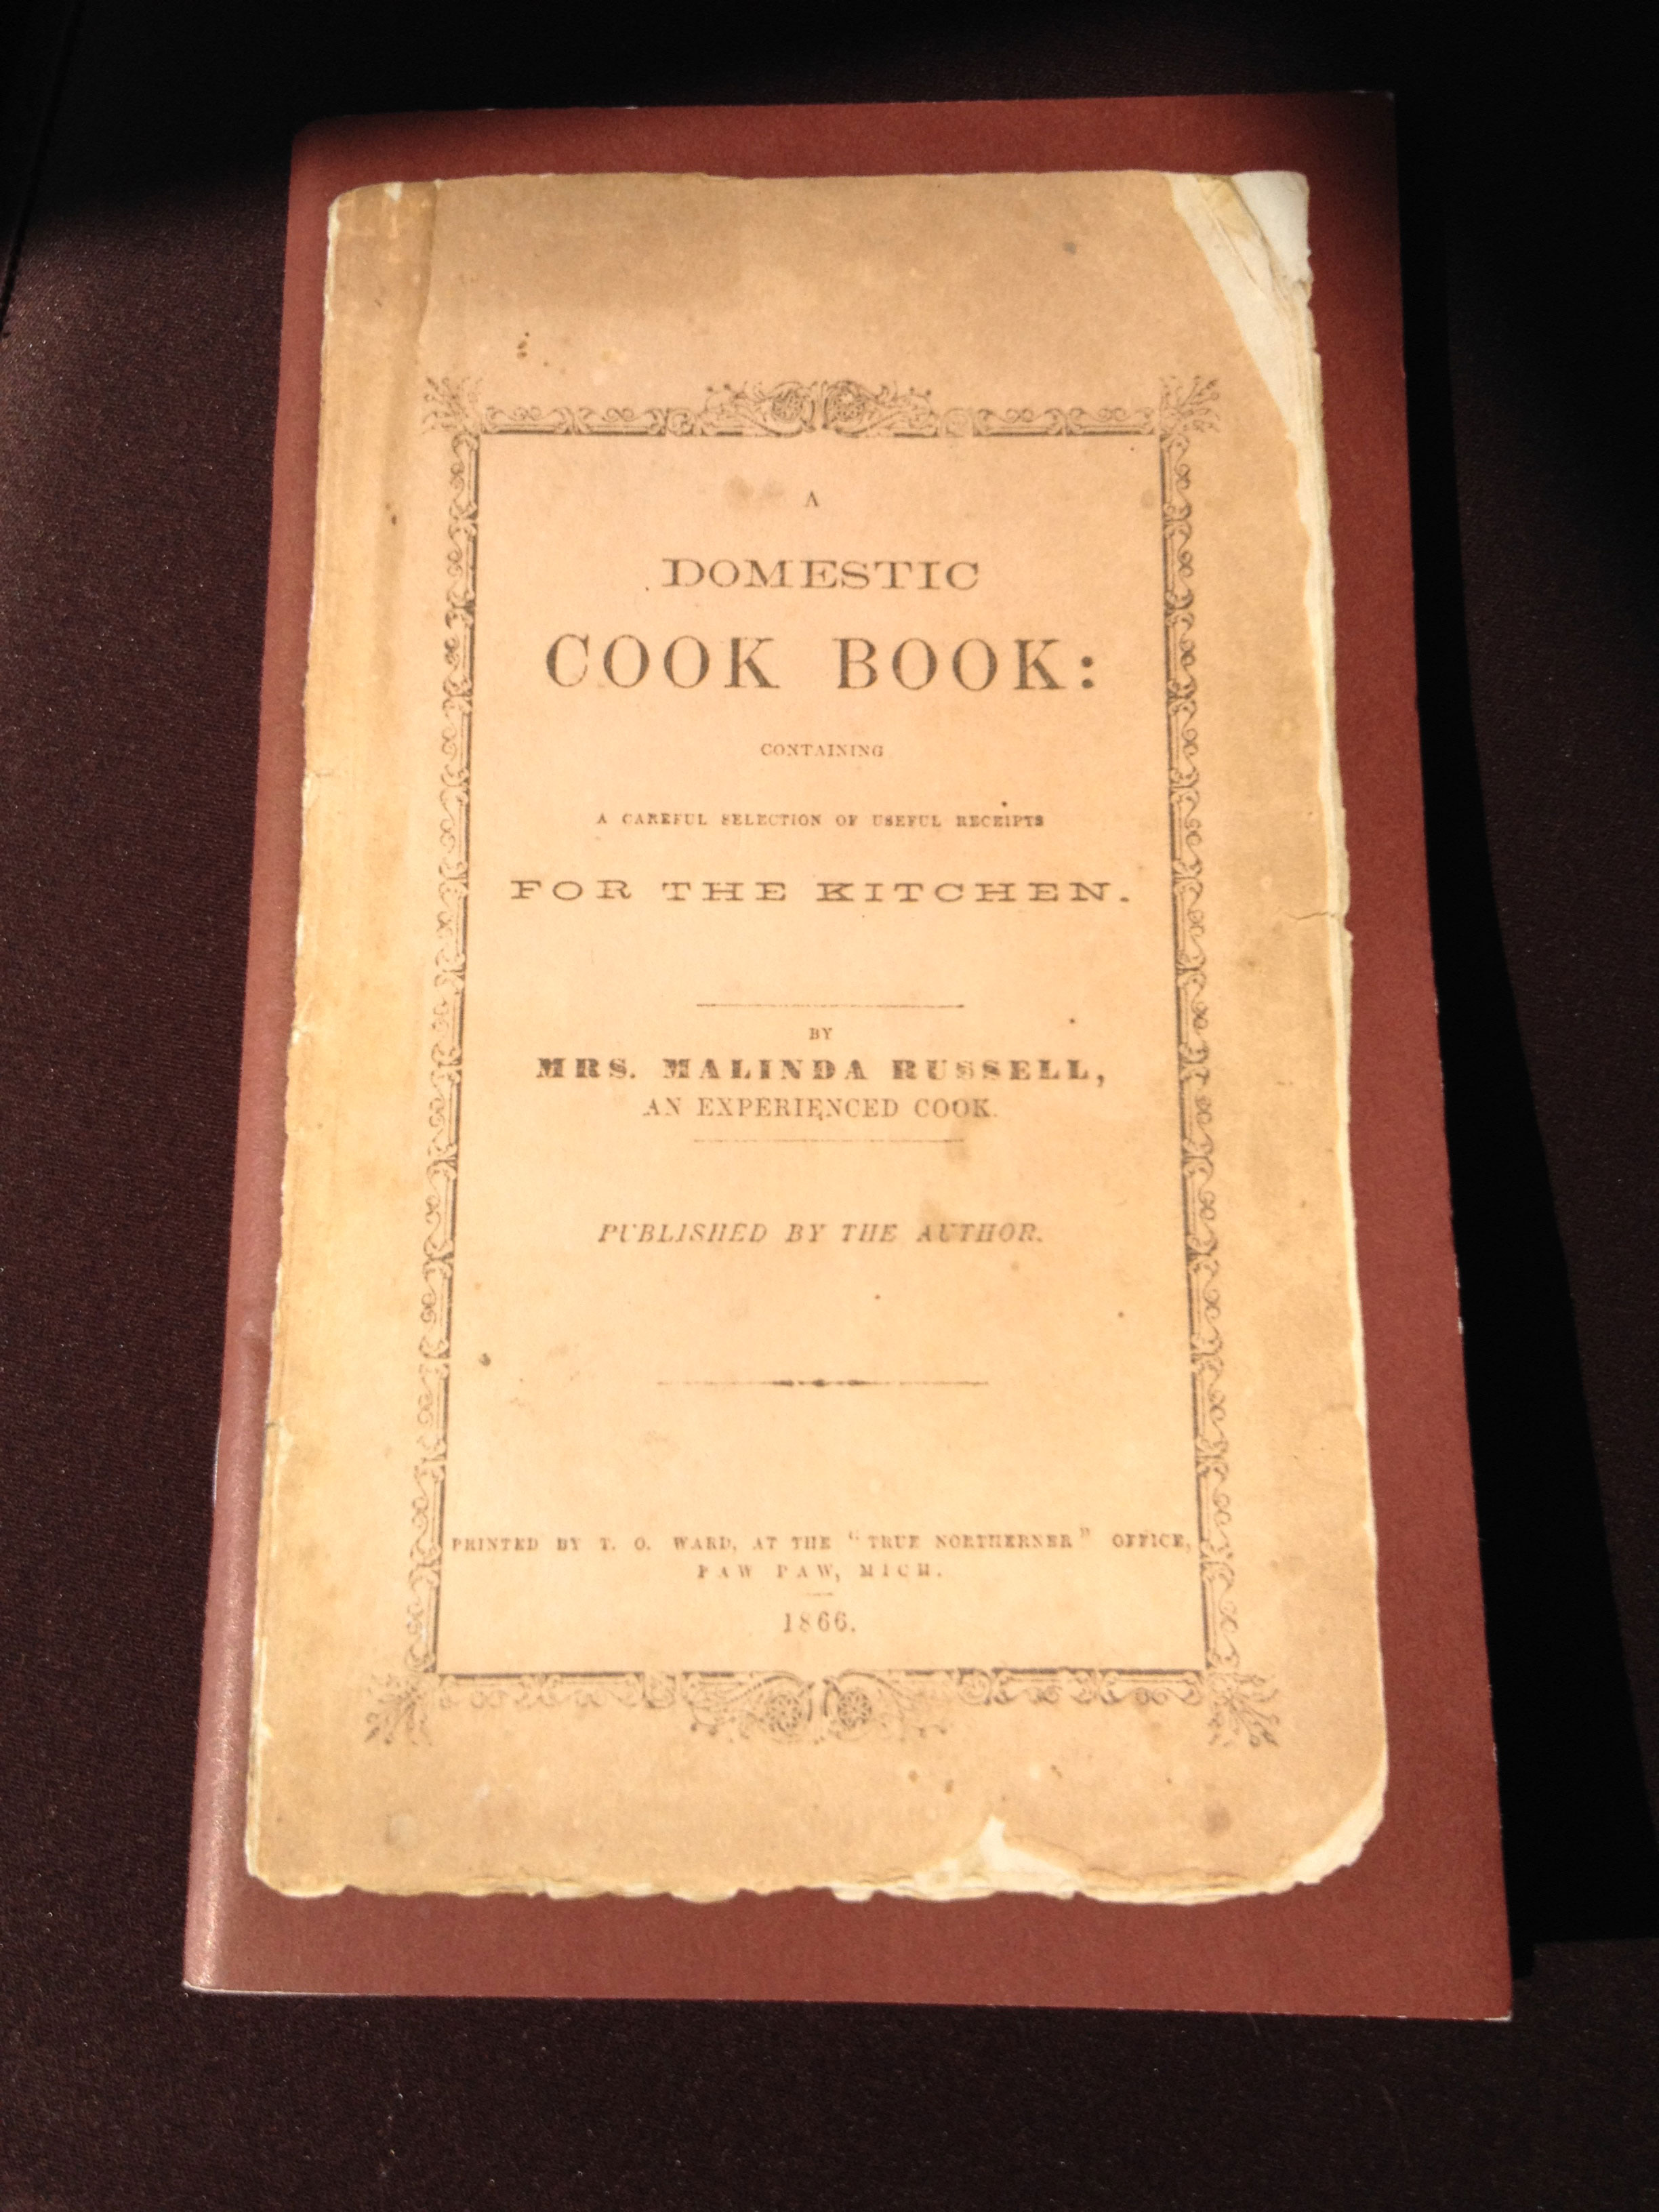 A Domestic Cook Book